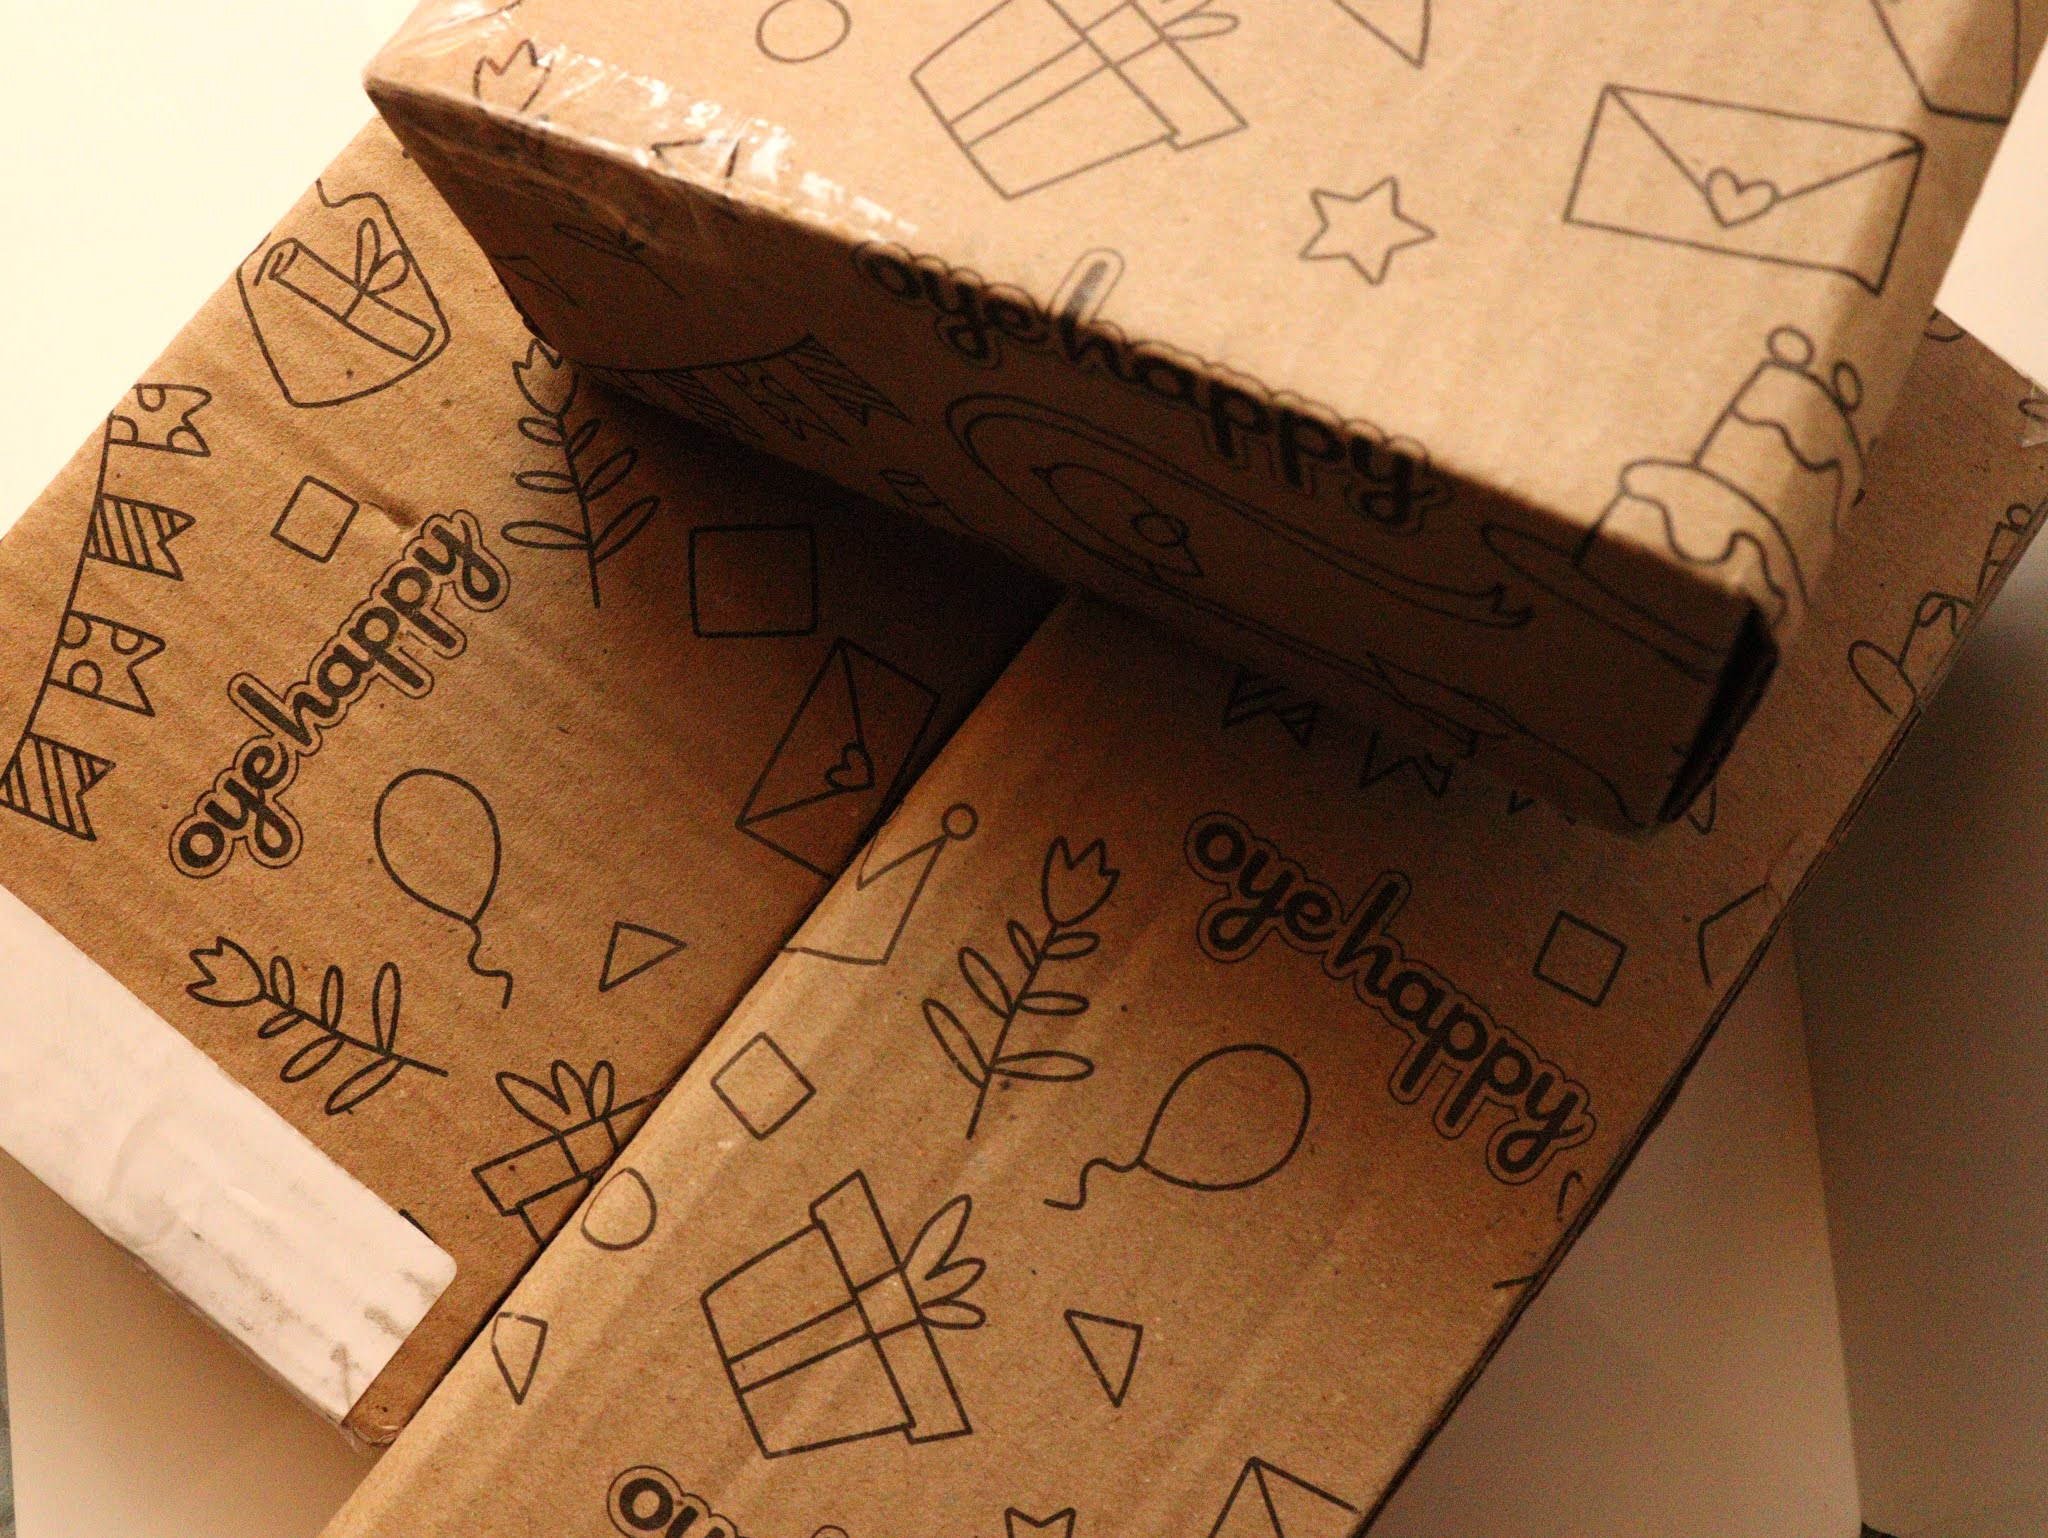 Oye Happy - Gift Delivery Service